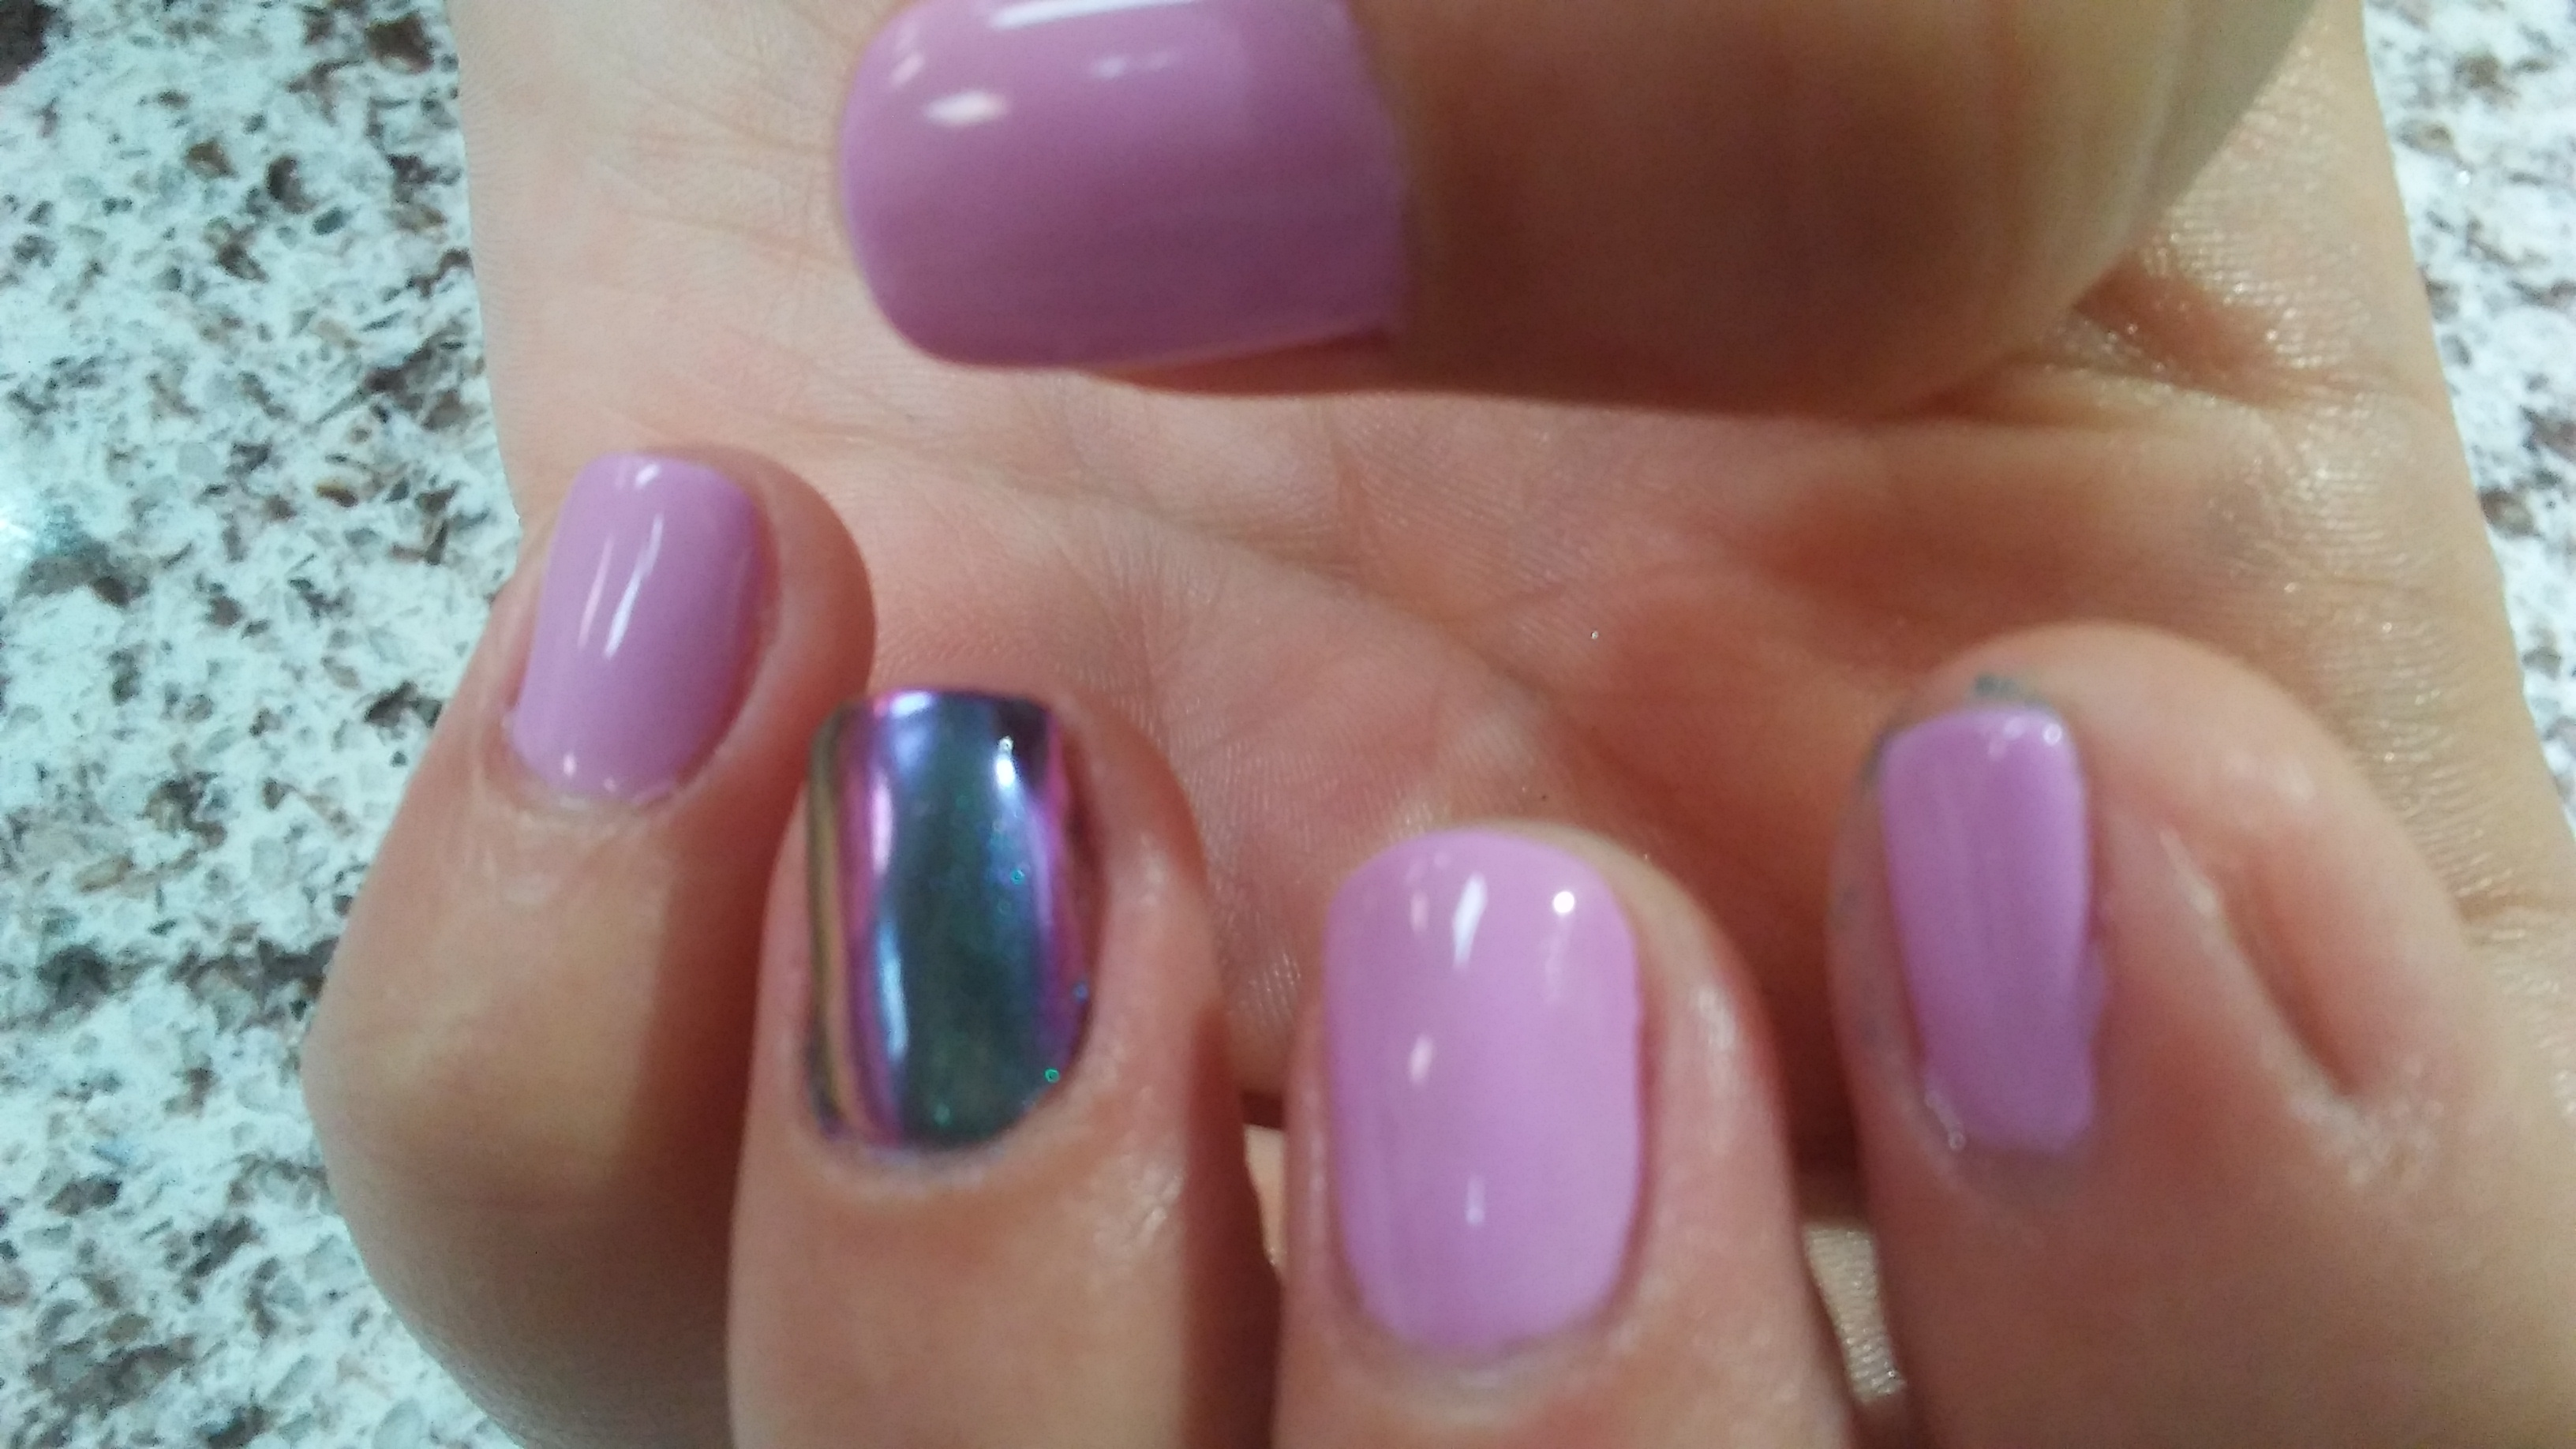 Wildflowers Nail Academy Unicorn Dandruff Over Black Acrylic Nails